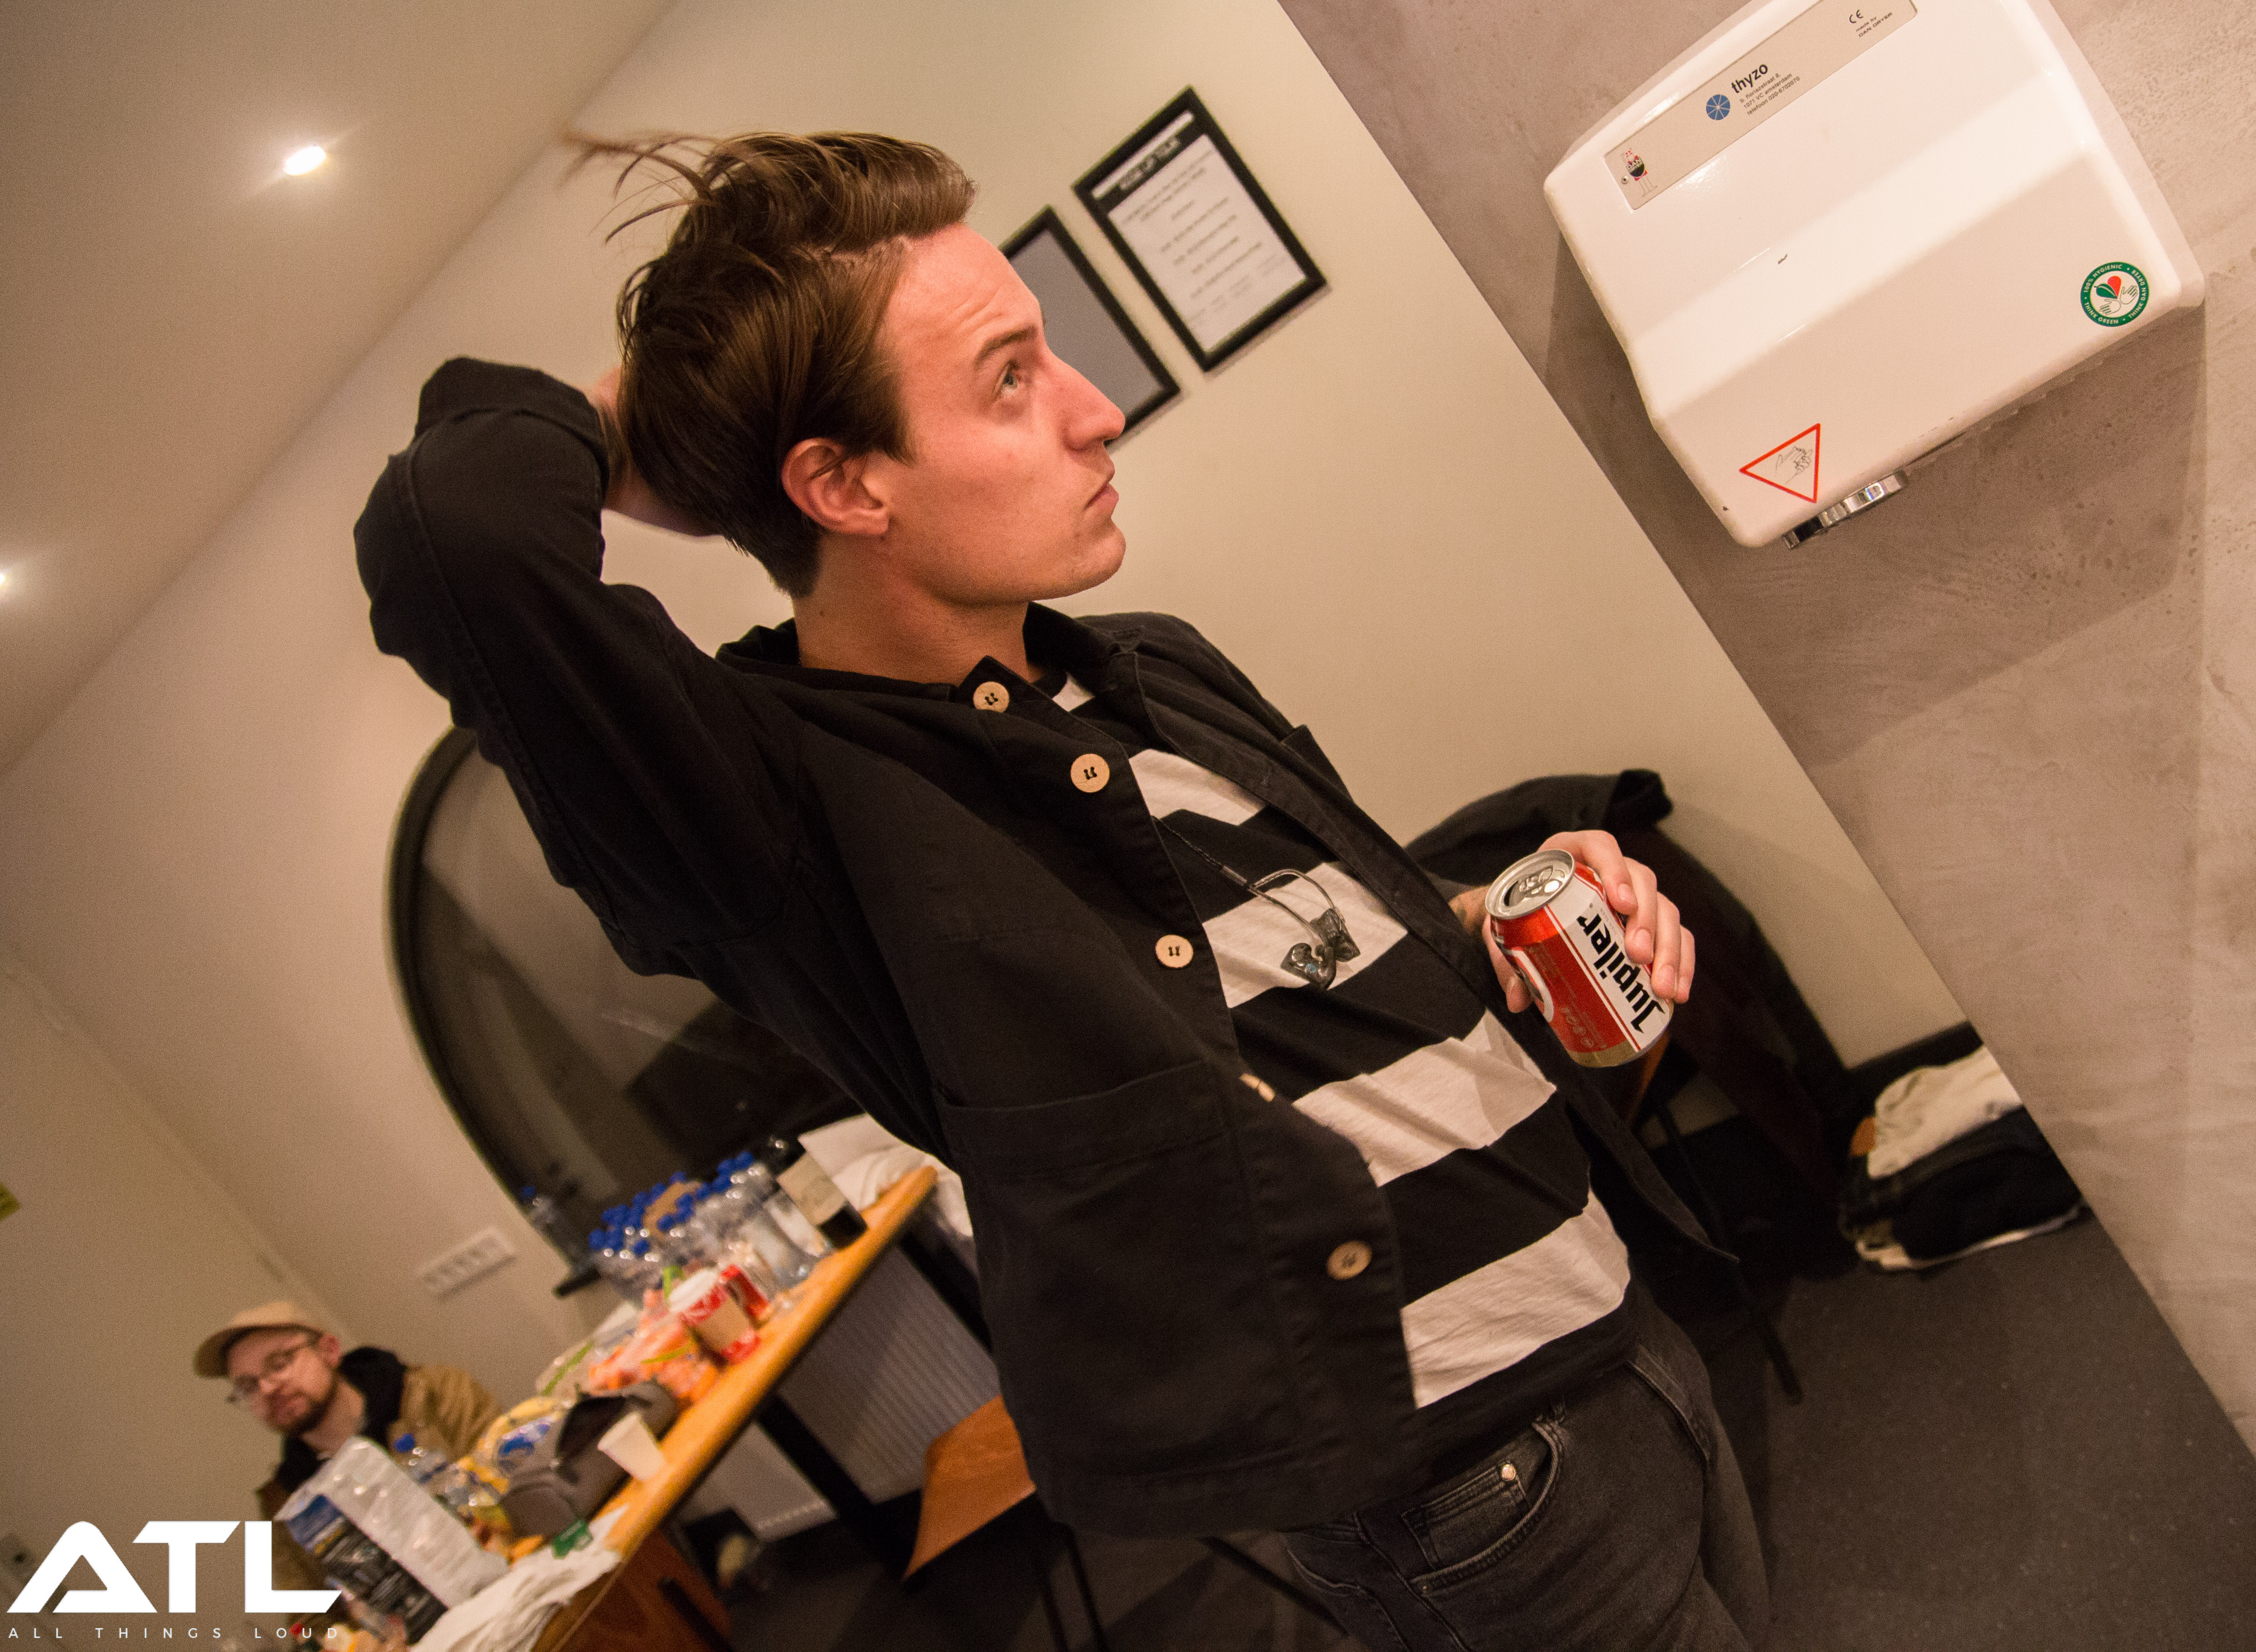 20:20. It's not long till Silverstein perform, with Paul-Marc adjusting his hair in preparation.